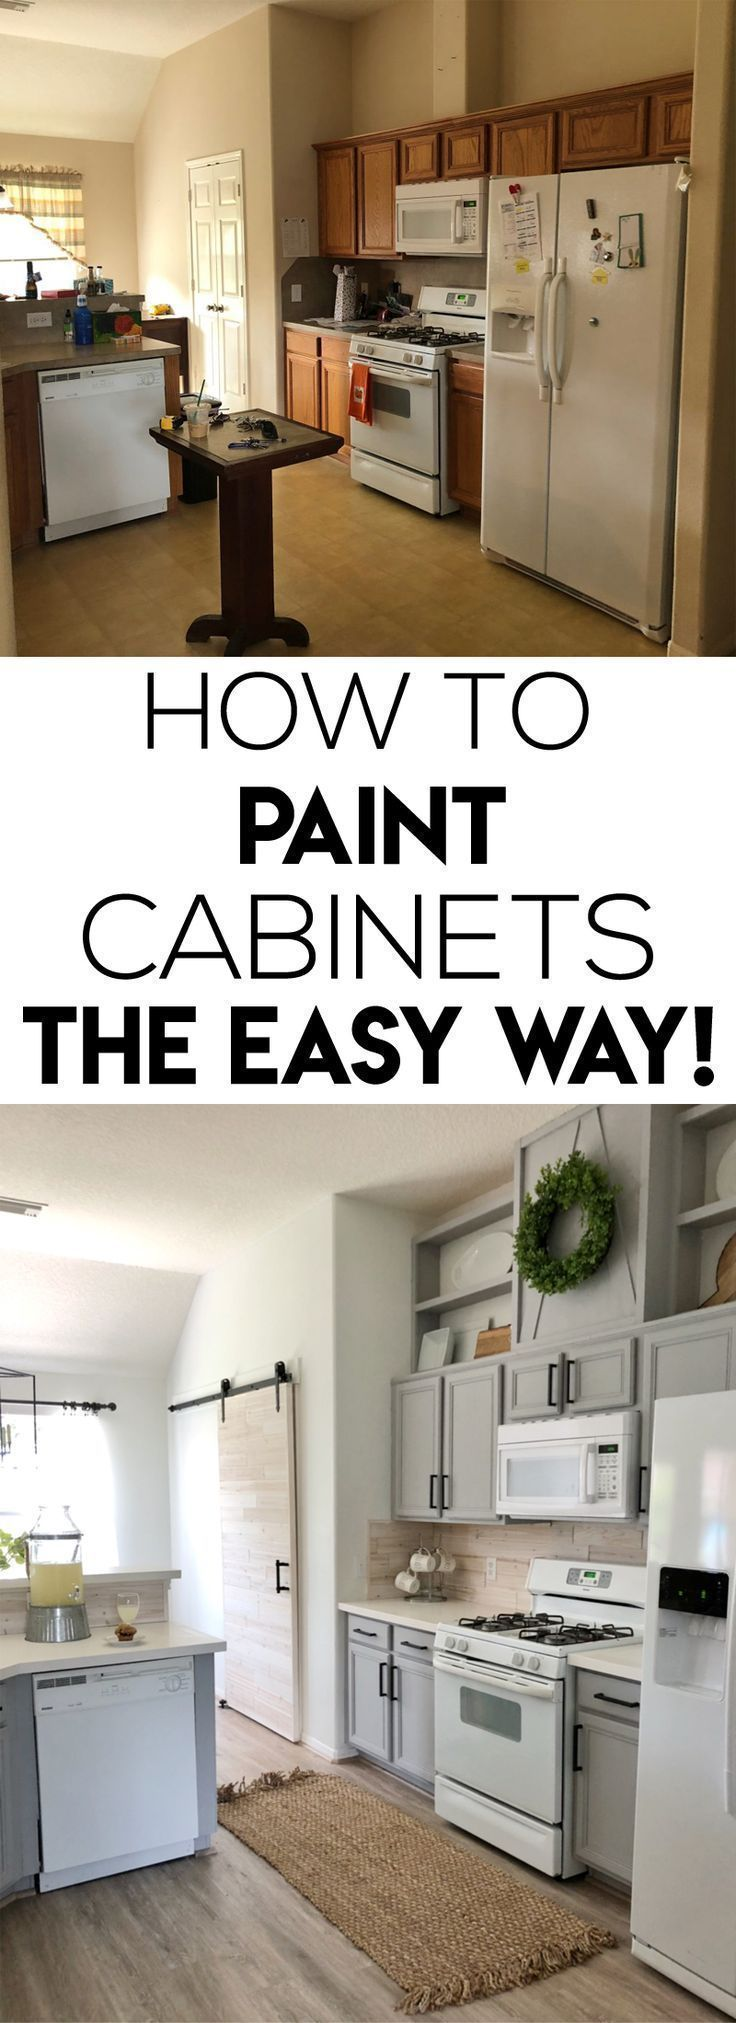 How To Easily Paint Kitchen Cabinet New Kitchen Cabinets Kitchen Cabinets Kitchen Renovation